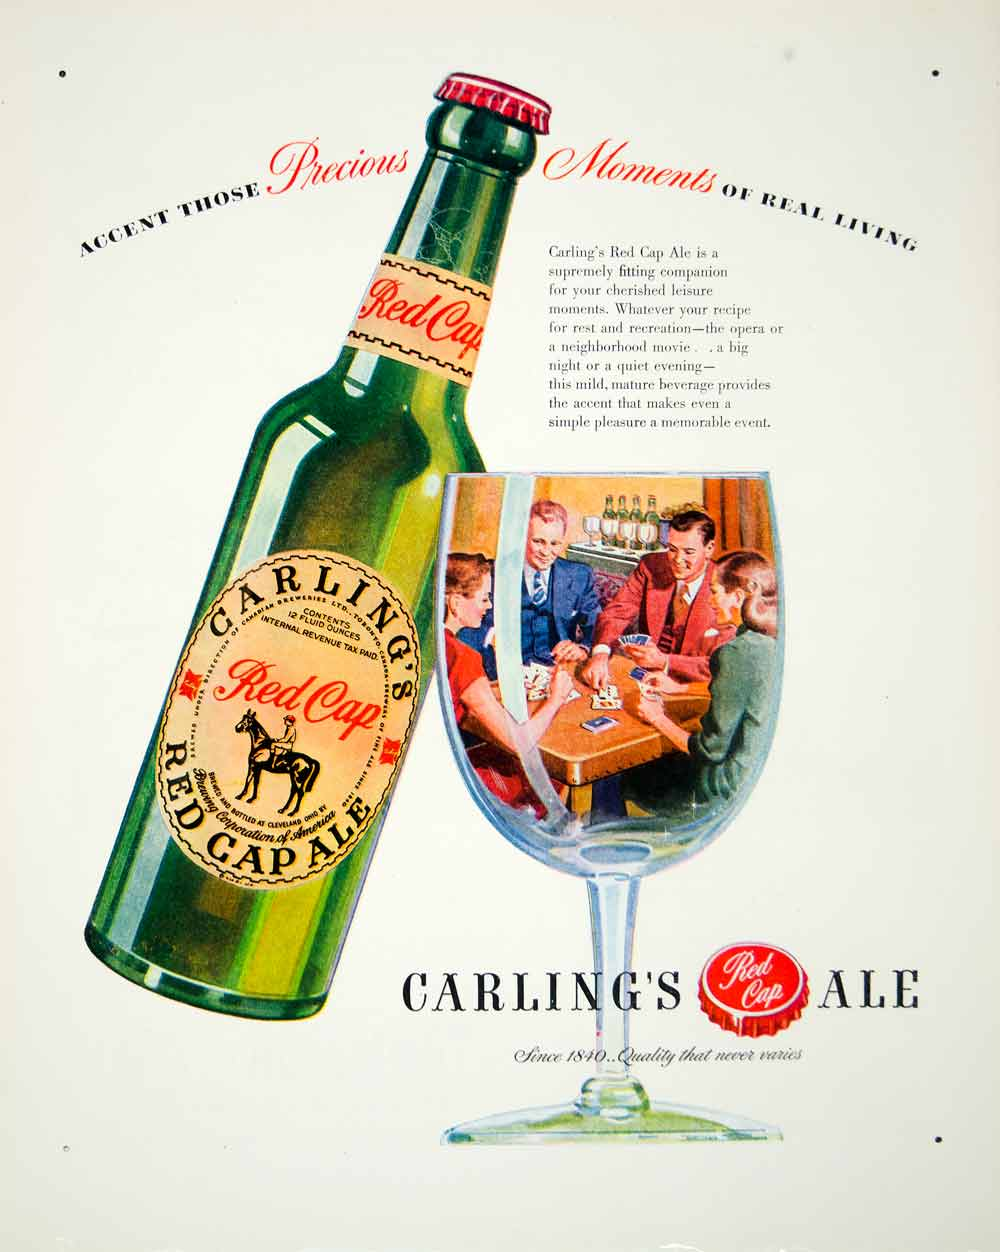 1946 Ad Carling Red Cap Ale Alcohol Drink Beverage Horse Party Glass Cards FTM1